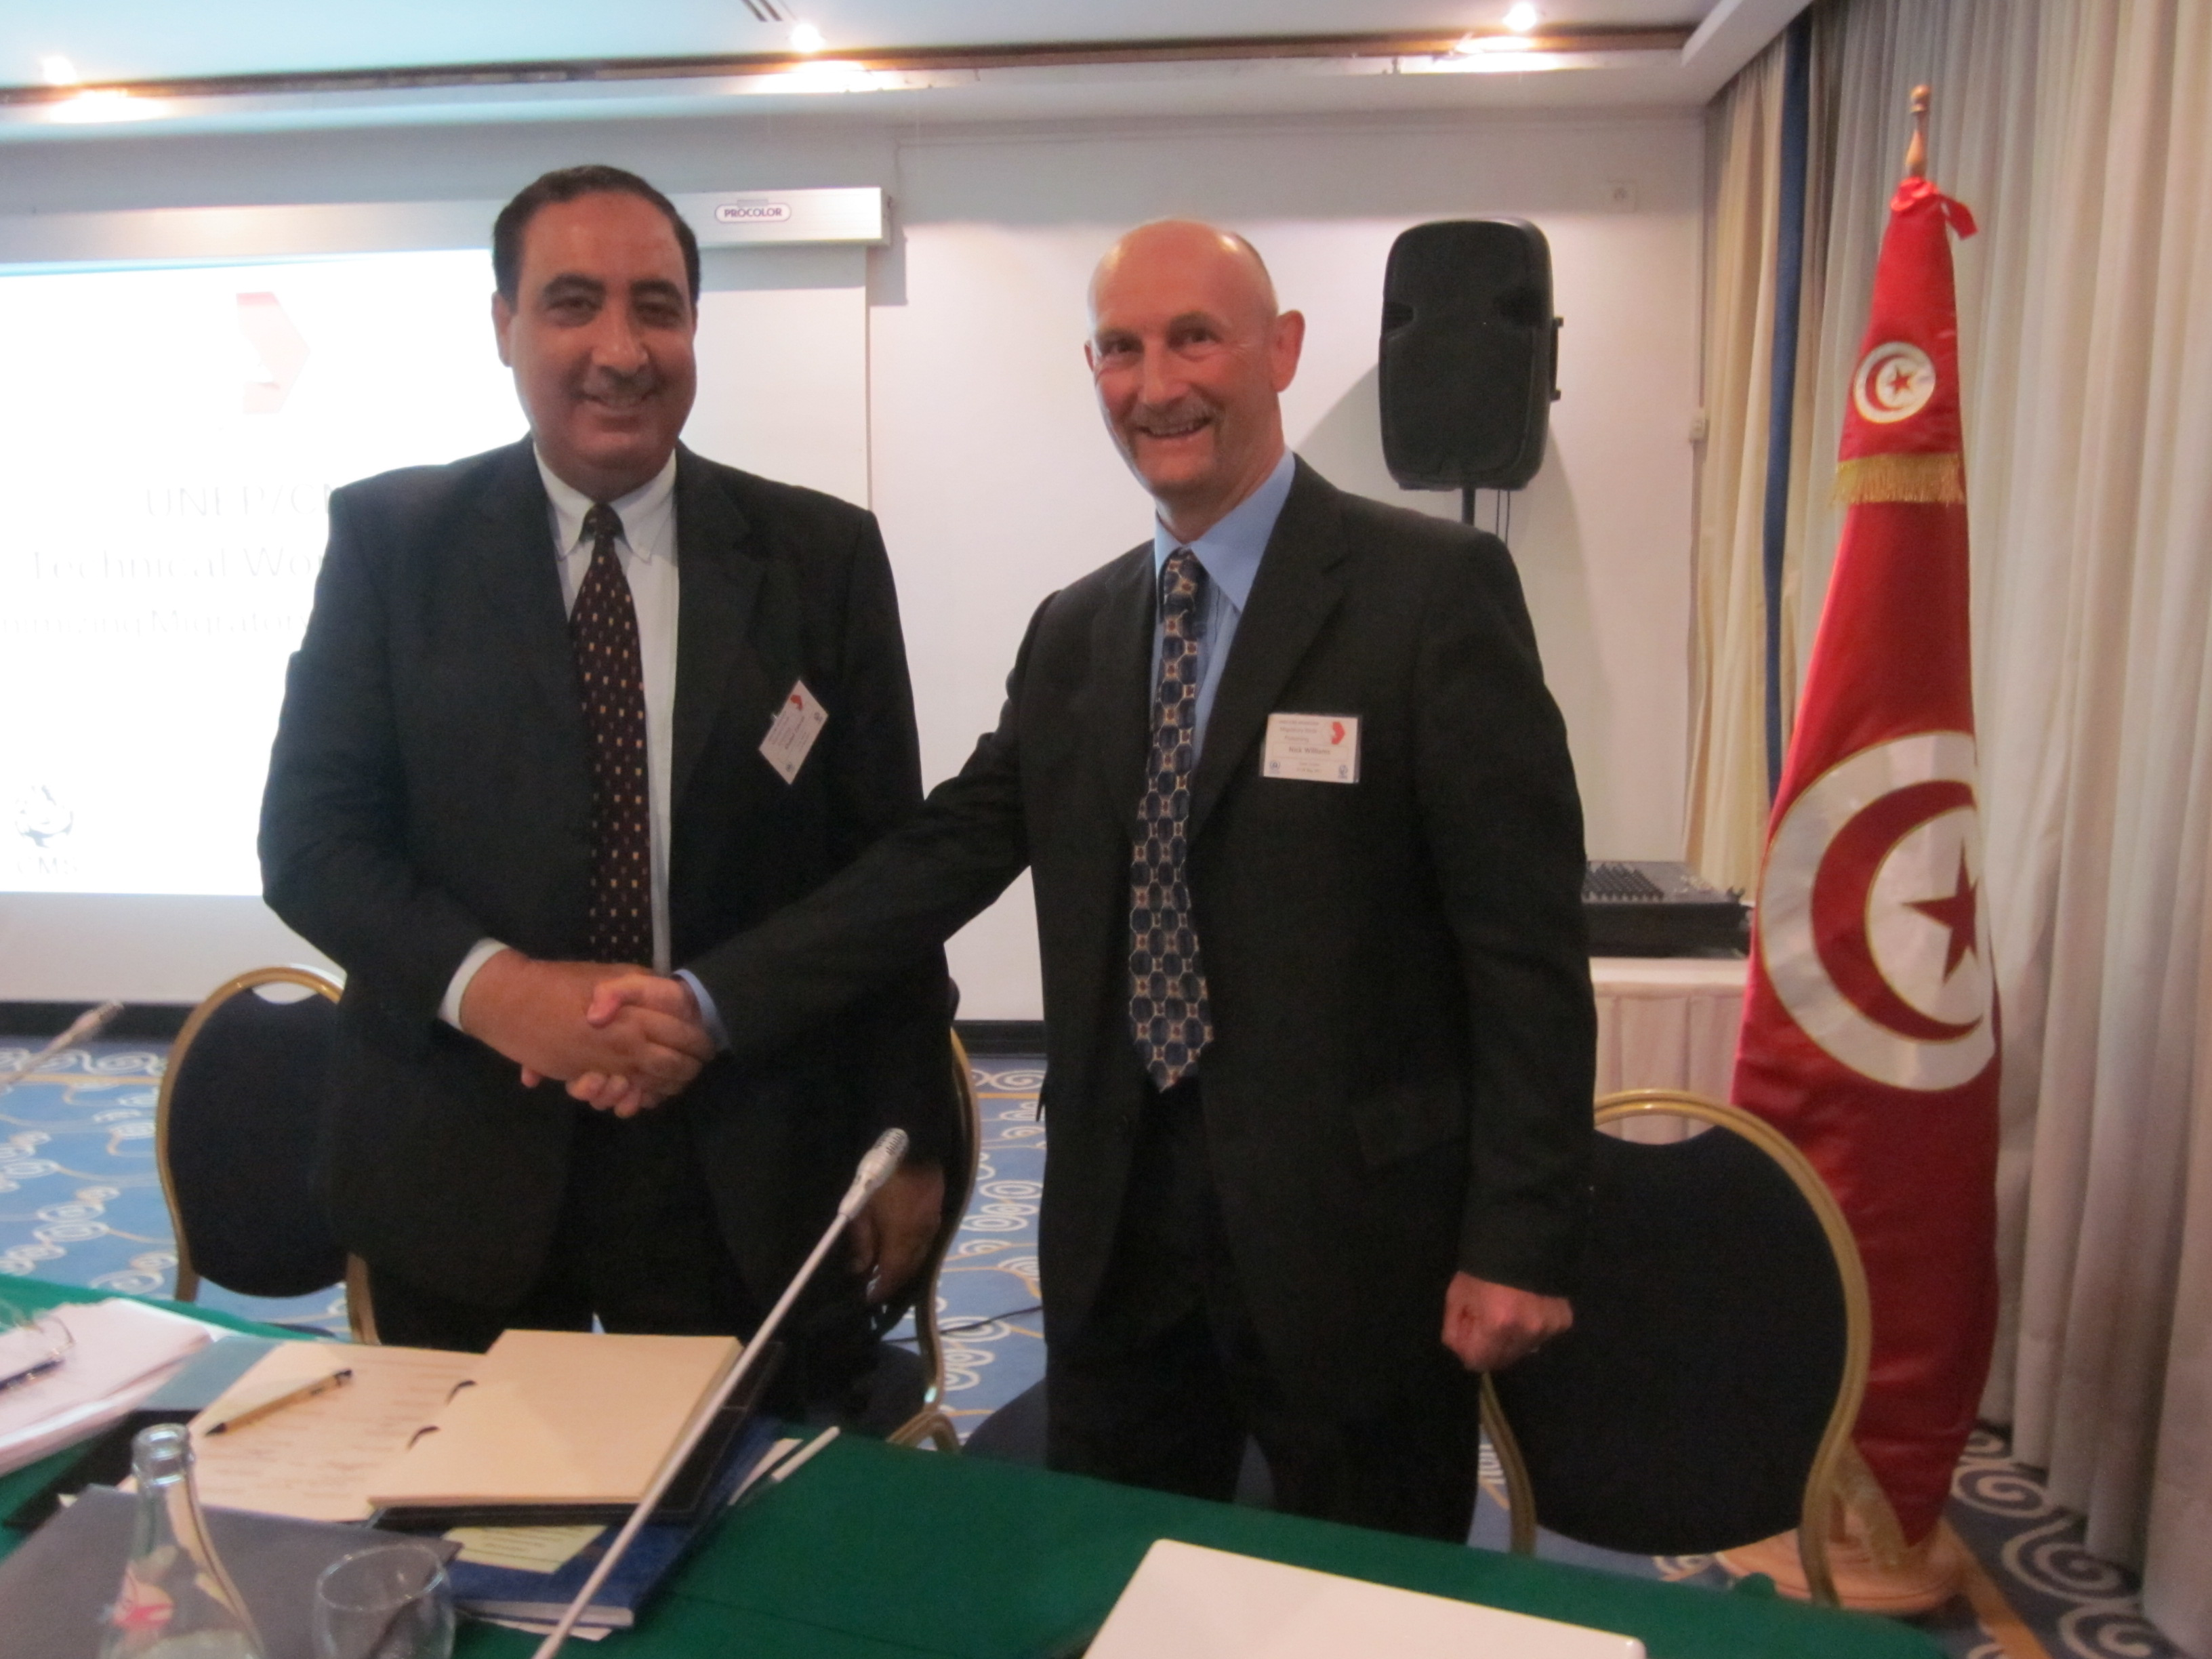 From left to right: Dr. Khaled Zahzah, Assistant Director, Hunting and National Parks, Head Offices of Forests; and Mr. Nick Williams, Programme Officer, CMS Office - Abu Dhabi.